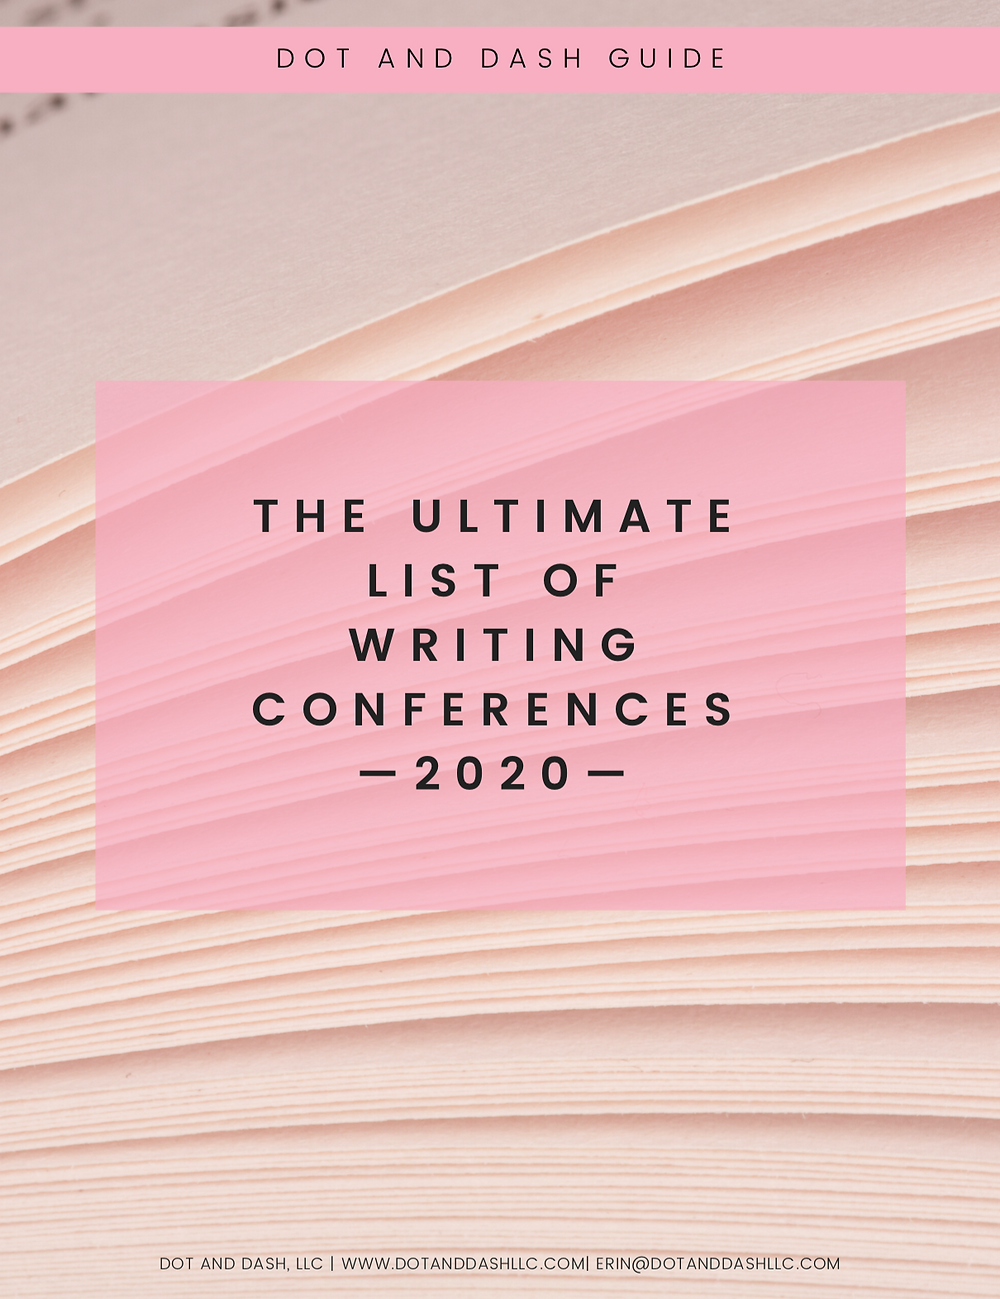 image of a cover that reads: The Ultimate List of Writing Conferences 2020